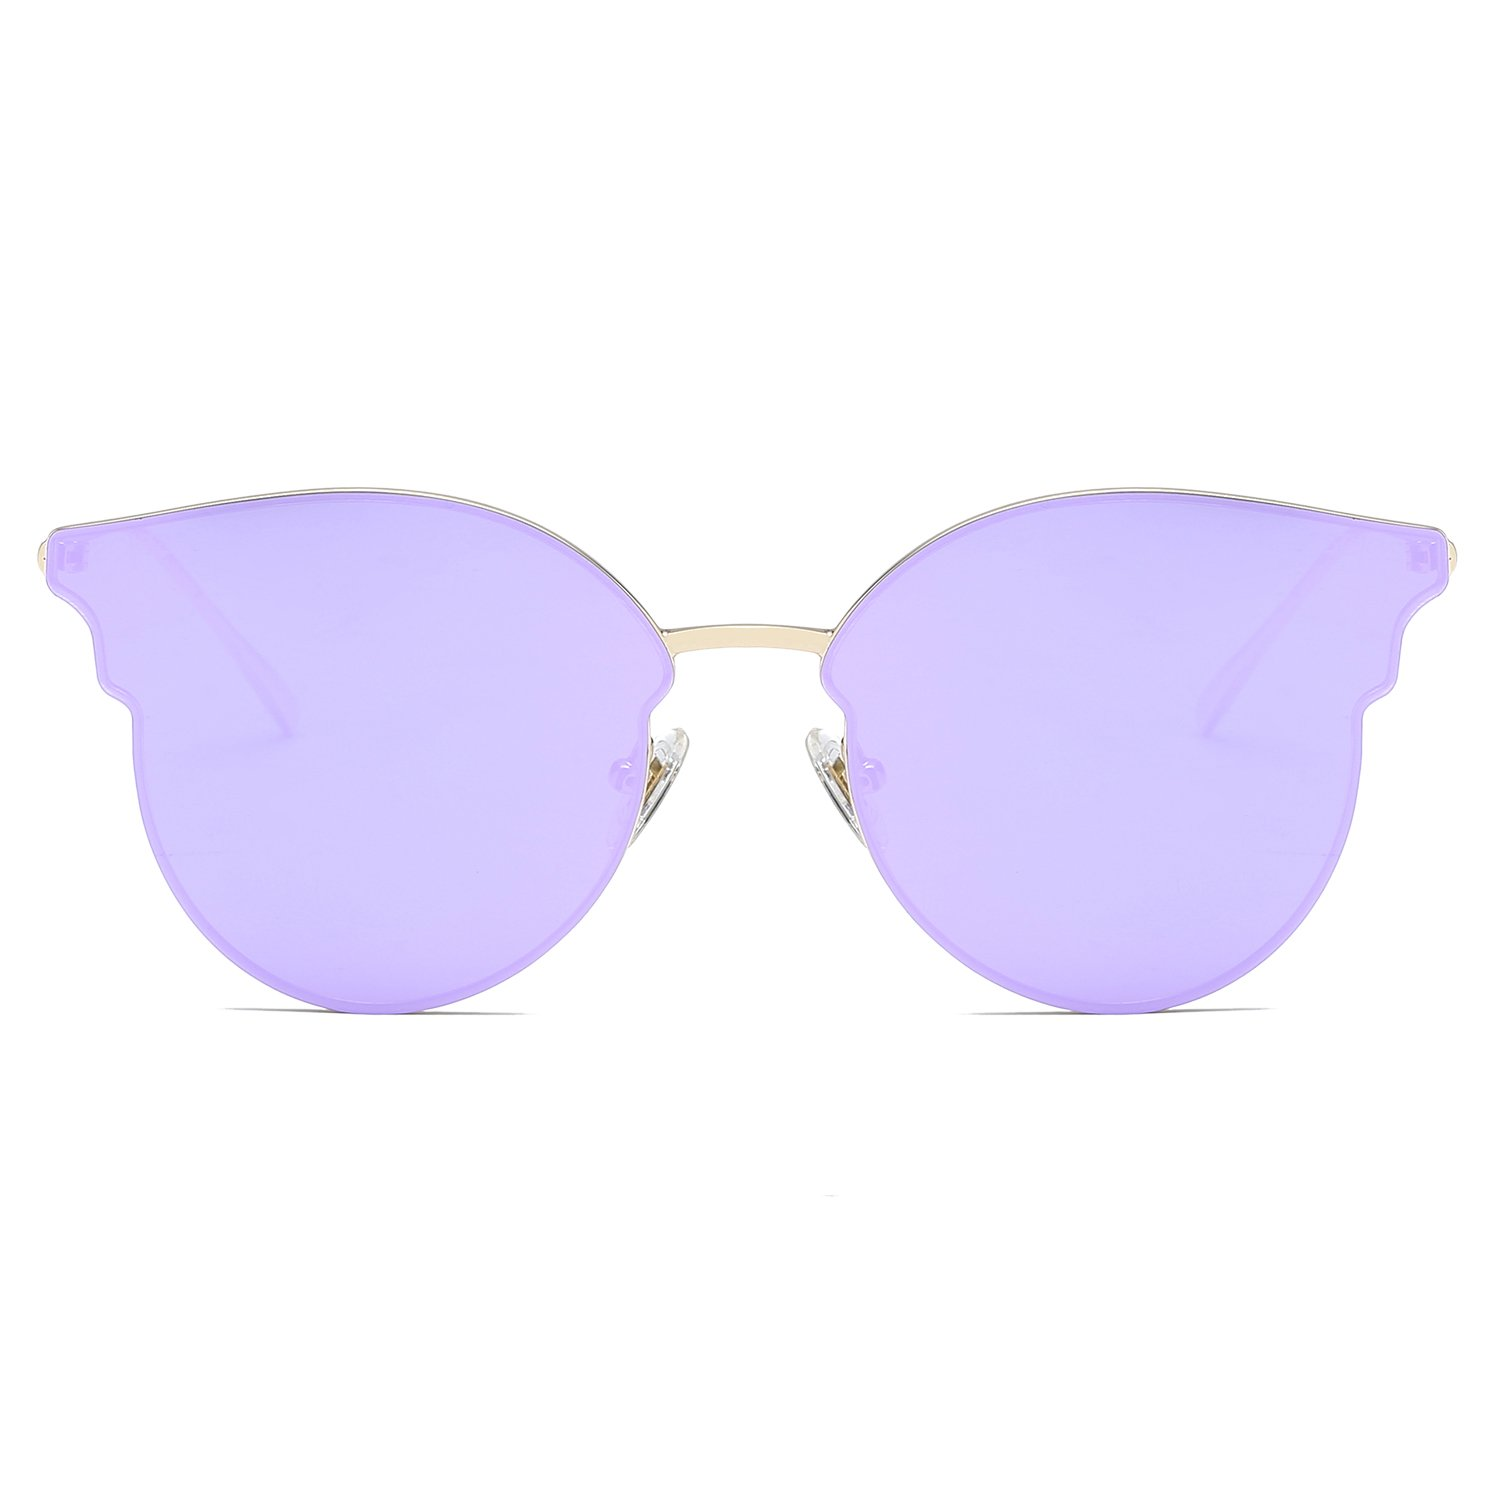 SOJOS Fashion Designer Cateye Women Sunglasses Oversized